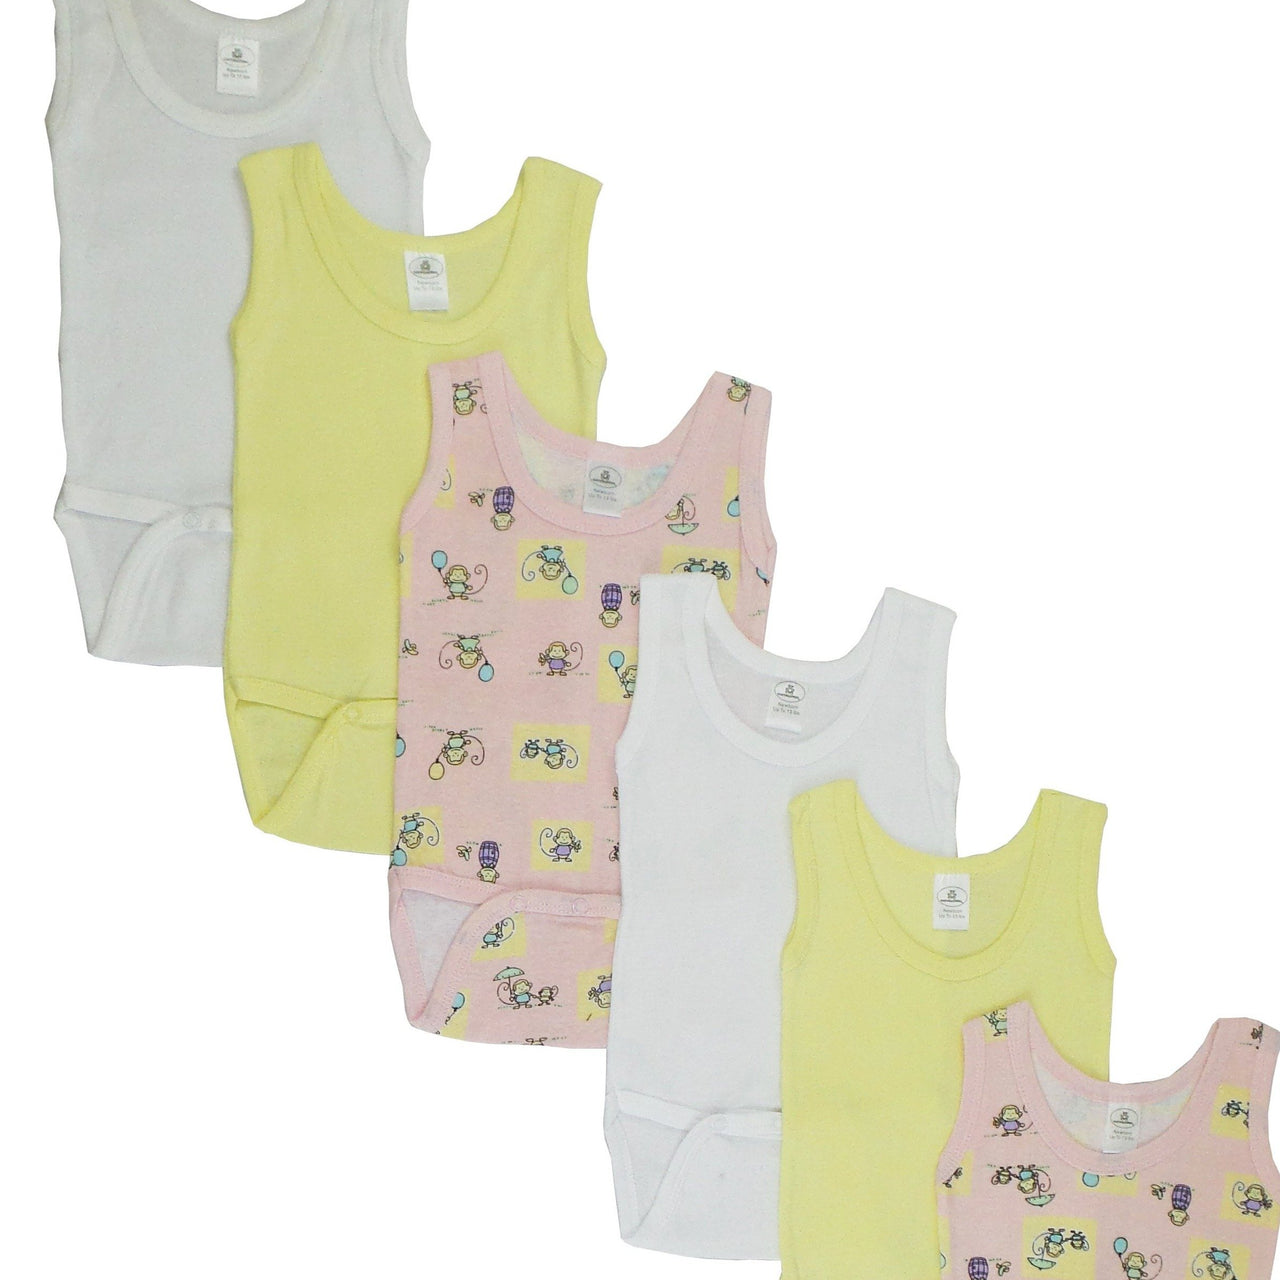 Baby Clothing - Girls Rib Knit Sleeveless Tank Top Onesies (6 Pack)